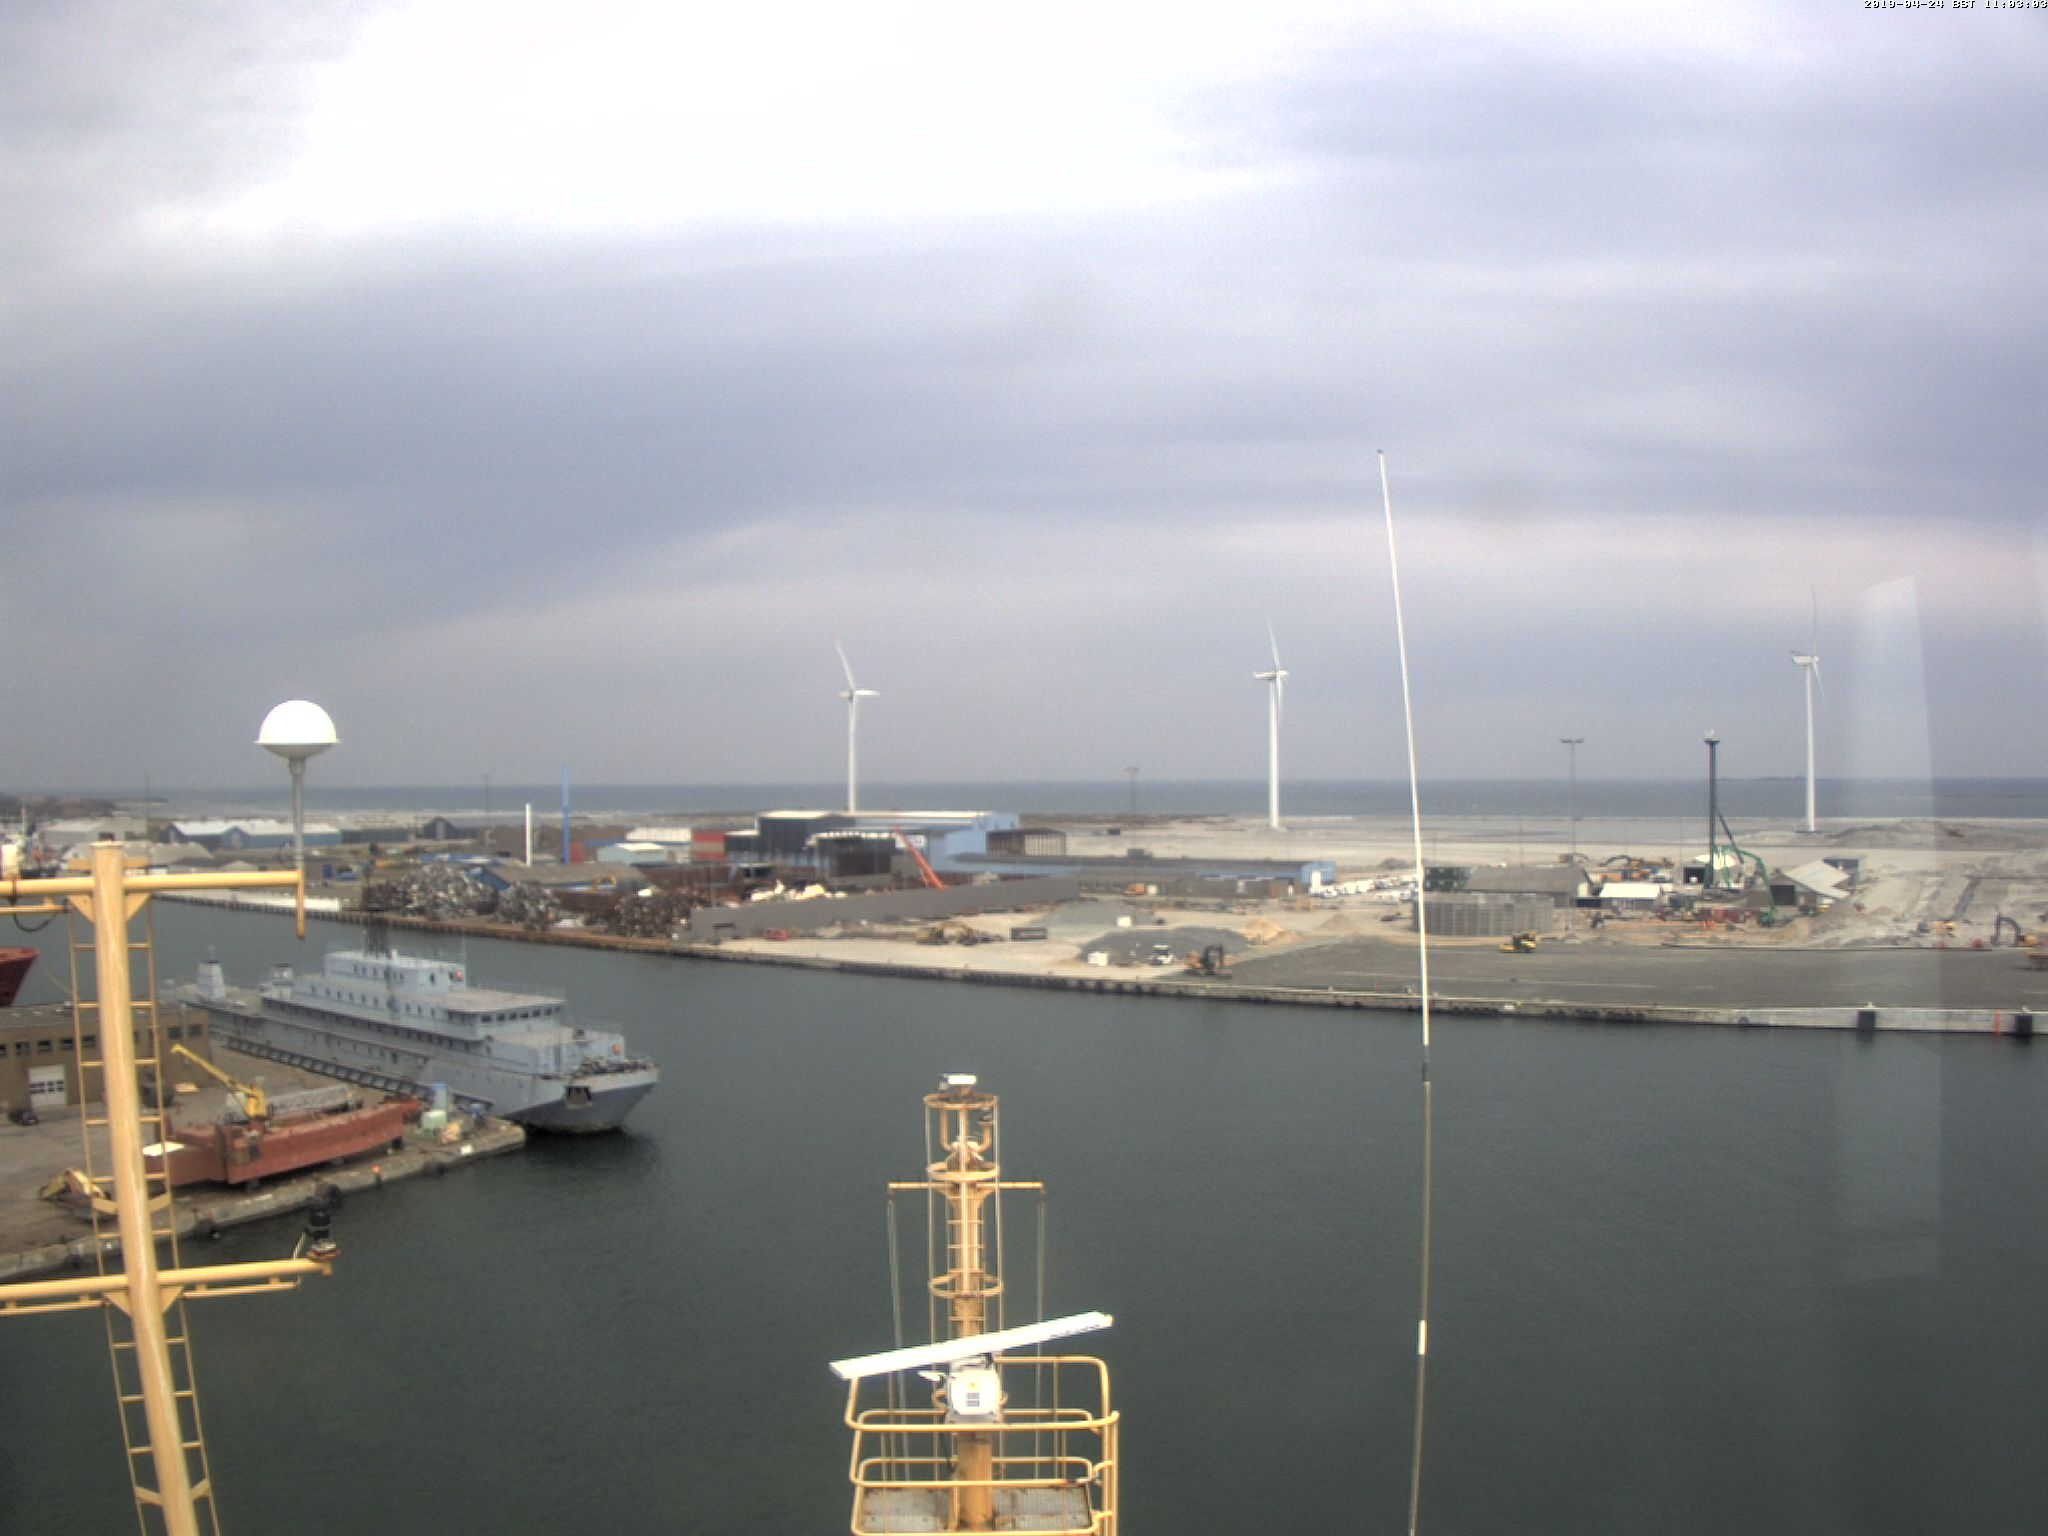 Latest RRS Ernest Shackleton webcam image